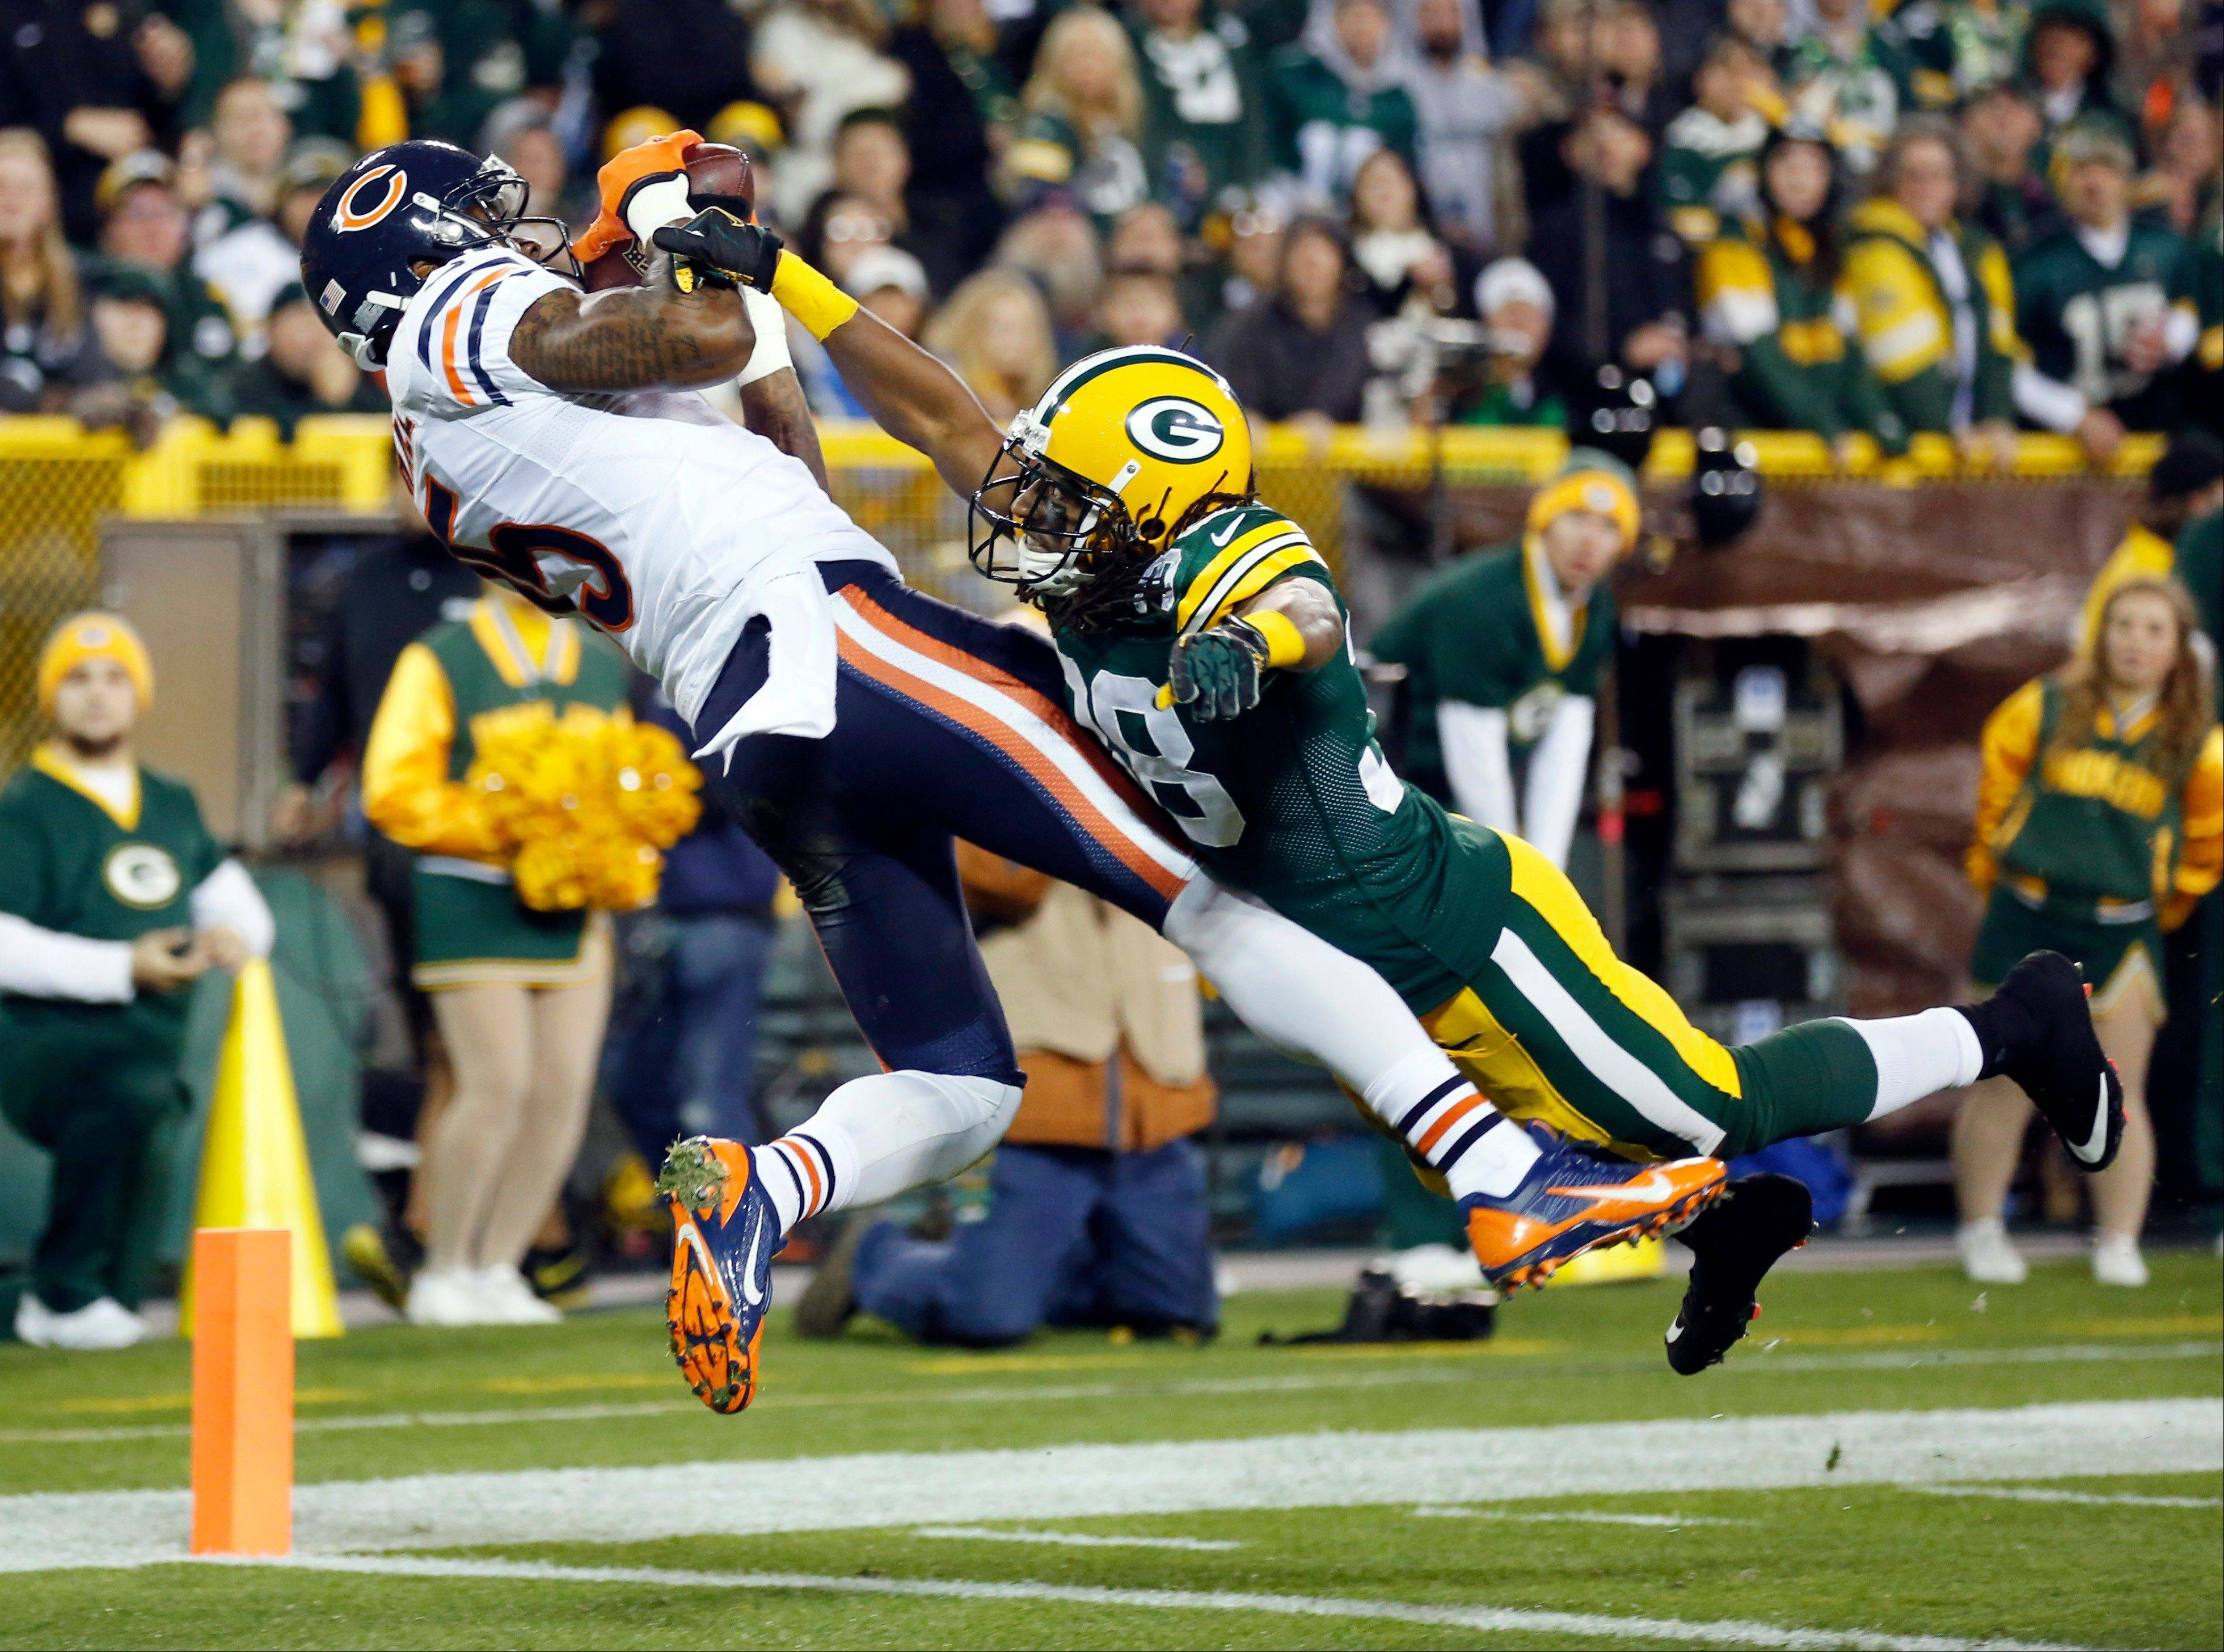 Chicago Bears' Brandon Marshall catches a touchdown pass with Green Bay Packers' Tramon Williams (38) covering during the first half .